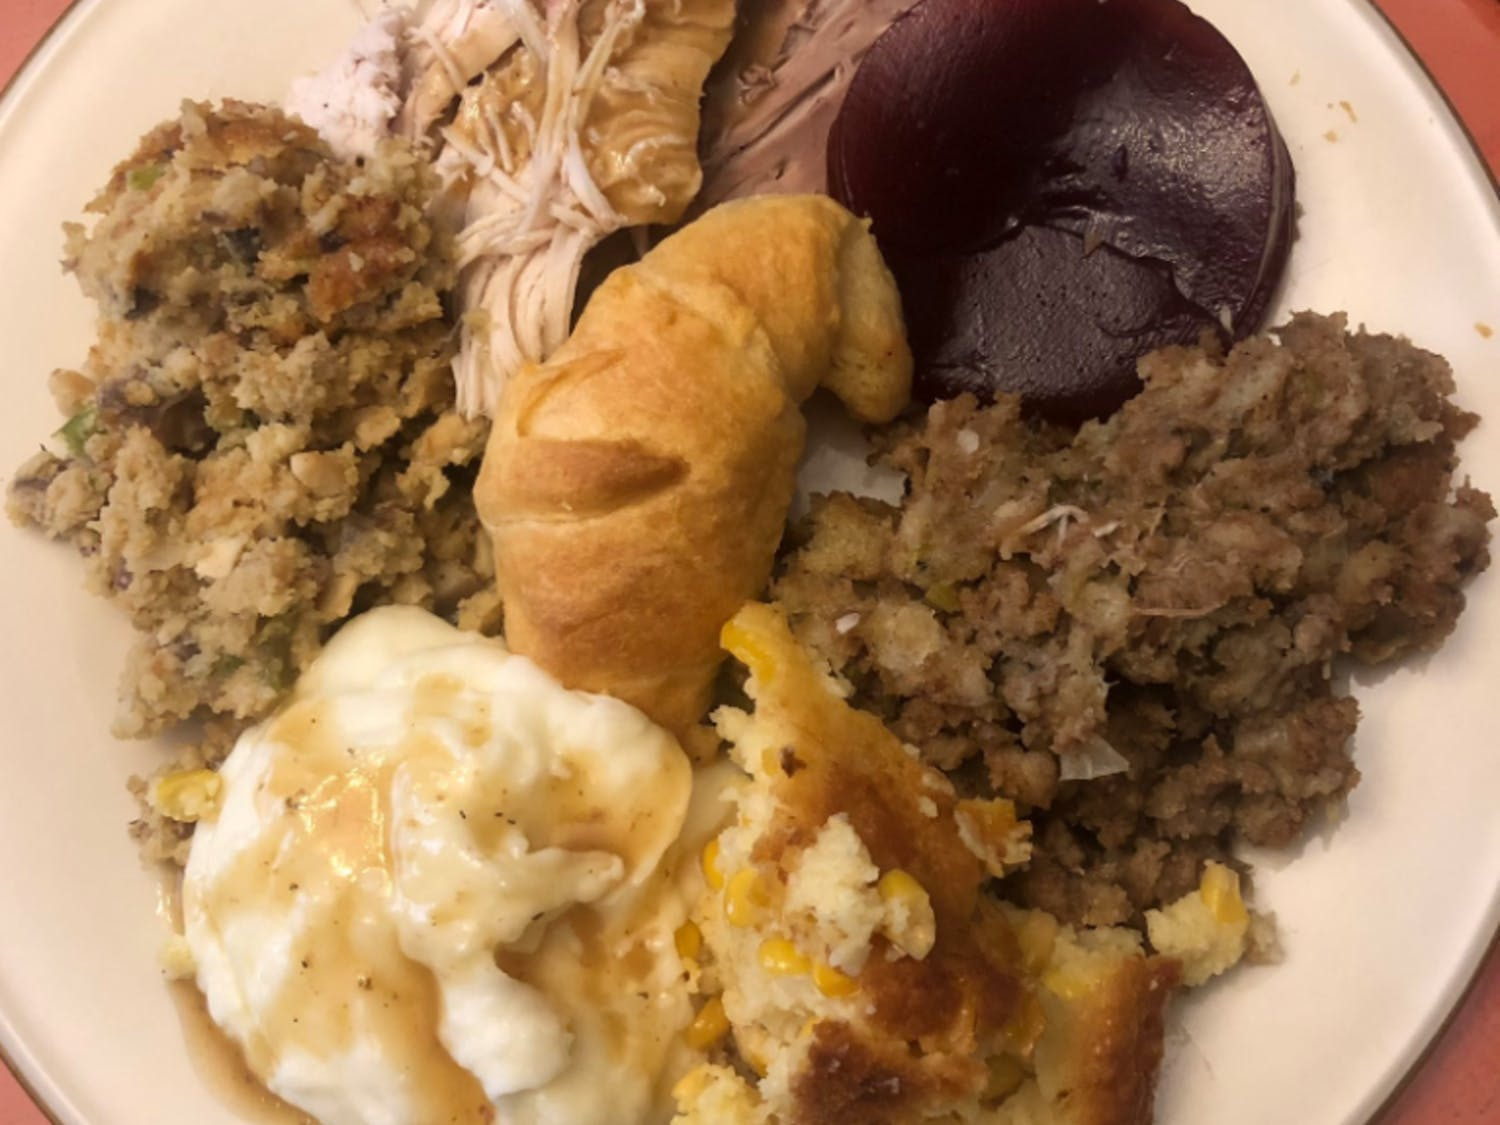 Reagan Hollan's Thanksgiving plate